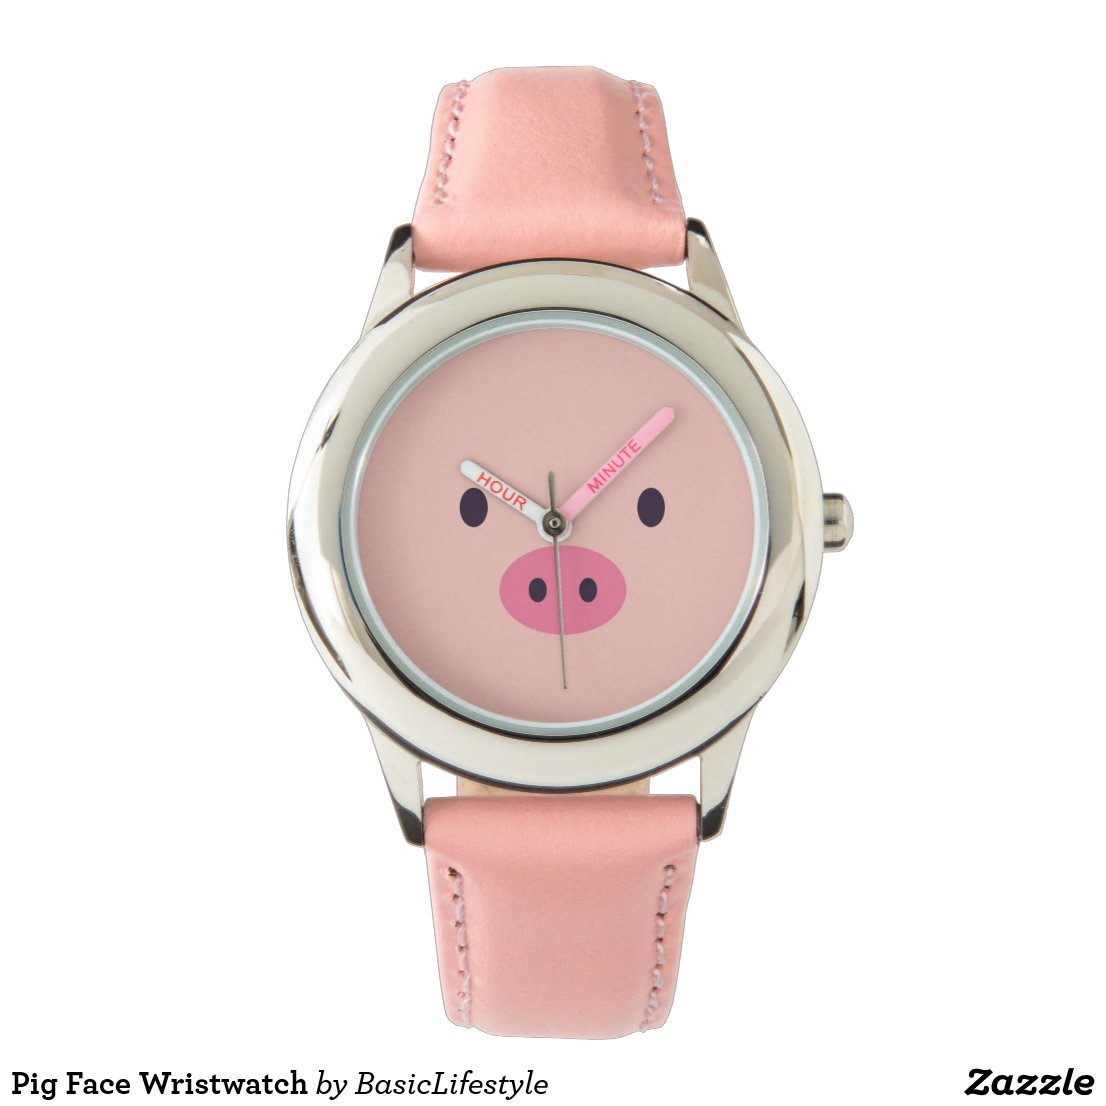 Pig Face Wristwatch